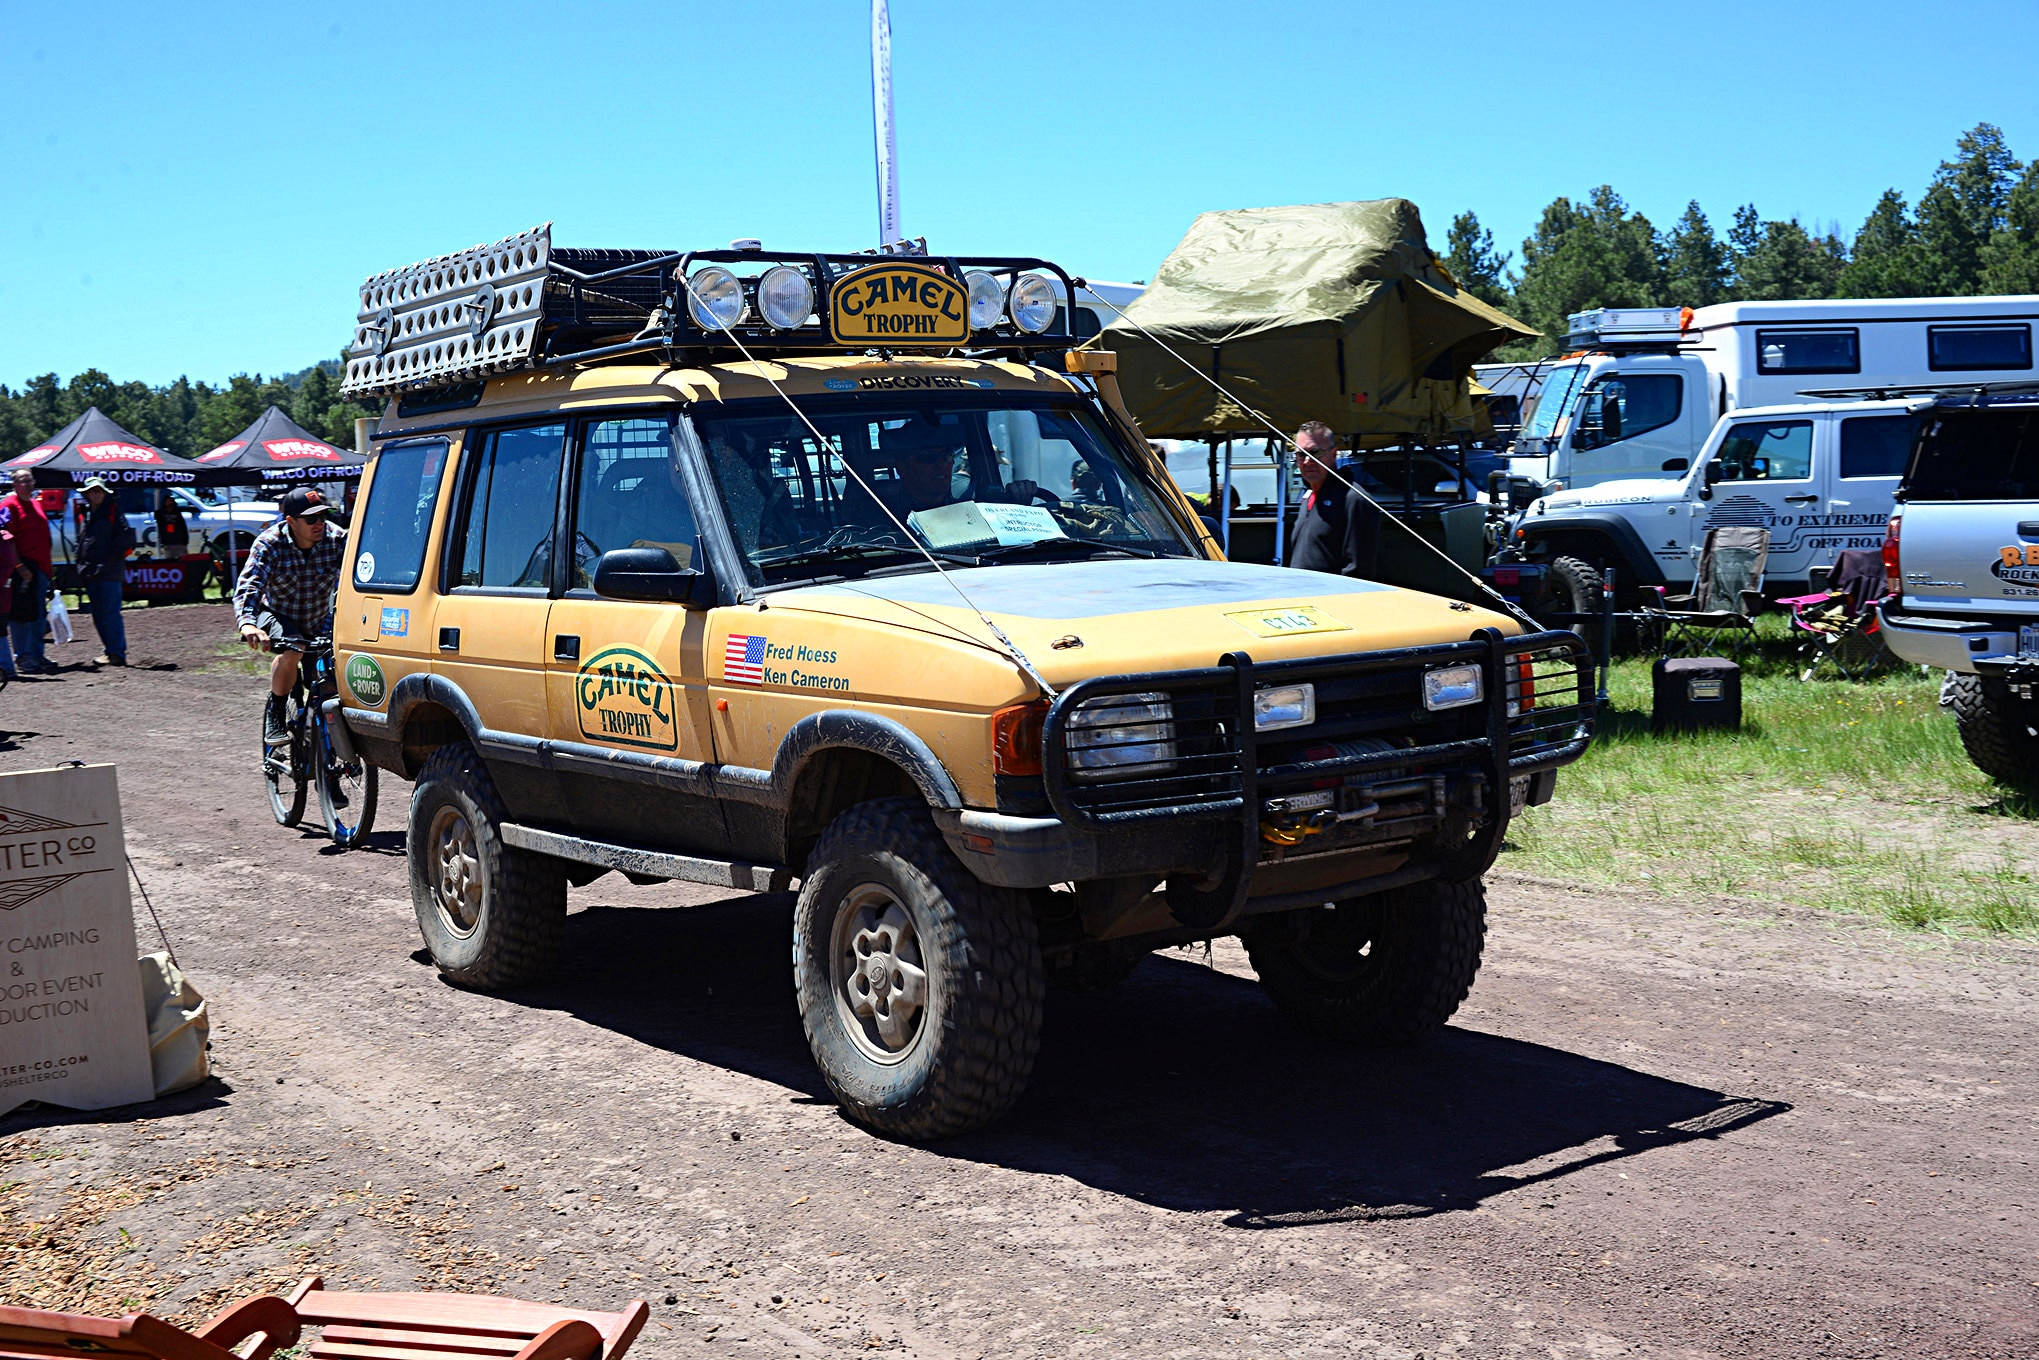 012 2016 Overland Expo 4x4 Vehicles Camping Flagstaff Mormon Lake Arizona Land Rover Discovery Camel Trophy Photo 107157367